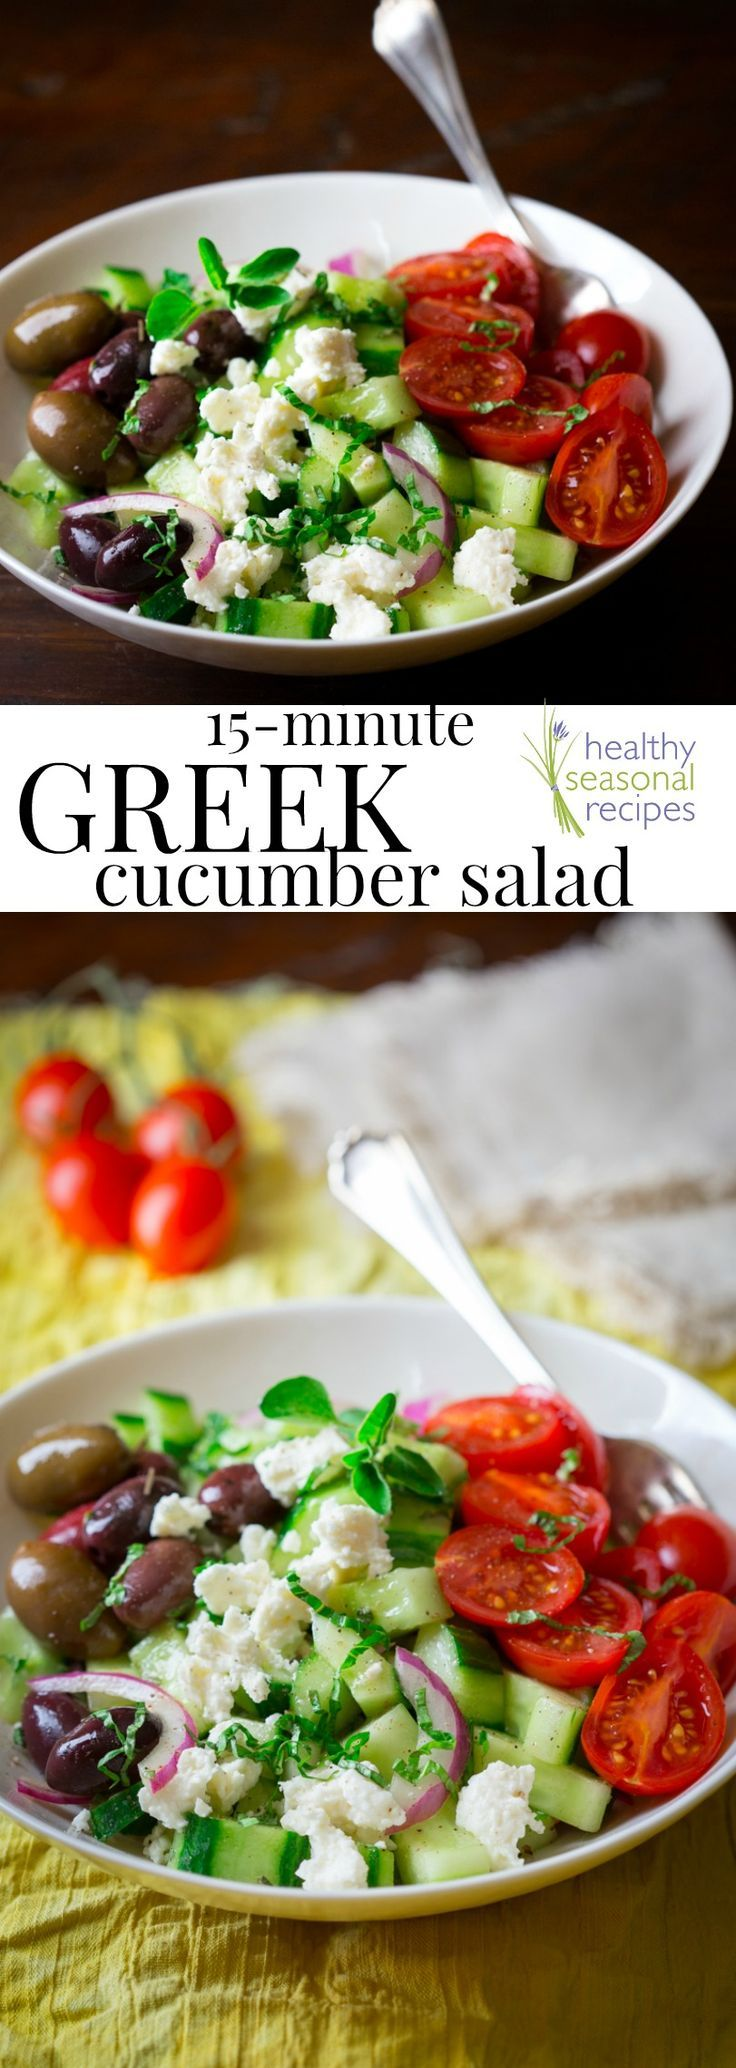 101 best greek food recipes images on pinterest greek recipes 15 minute greek cucumber salad healthy seasonal recipes forumfinder Image collections